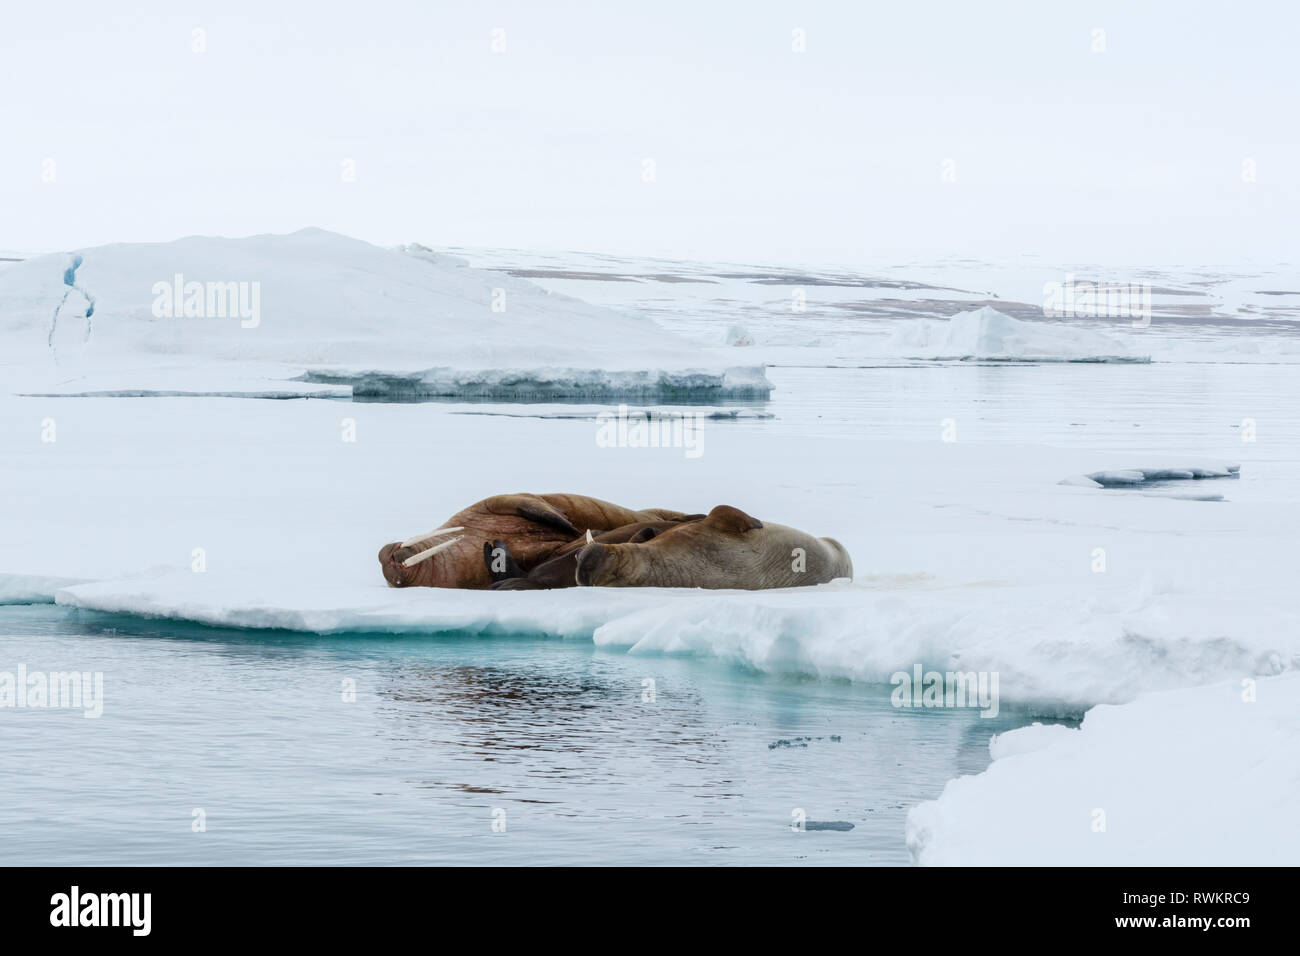 Atlantic walrus (Odobenus rosmarus) lying on iceberg, Vibebukta, Austfonna, Nordaustlandet, Svalbard, Norway Stock Photo